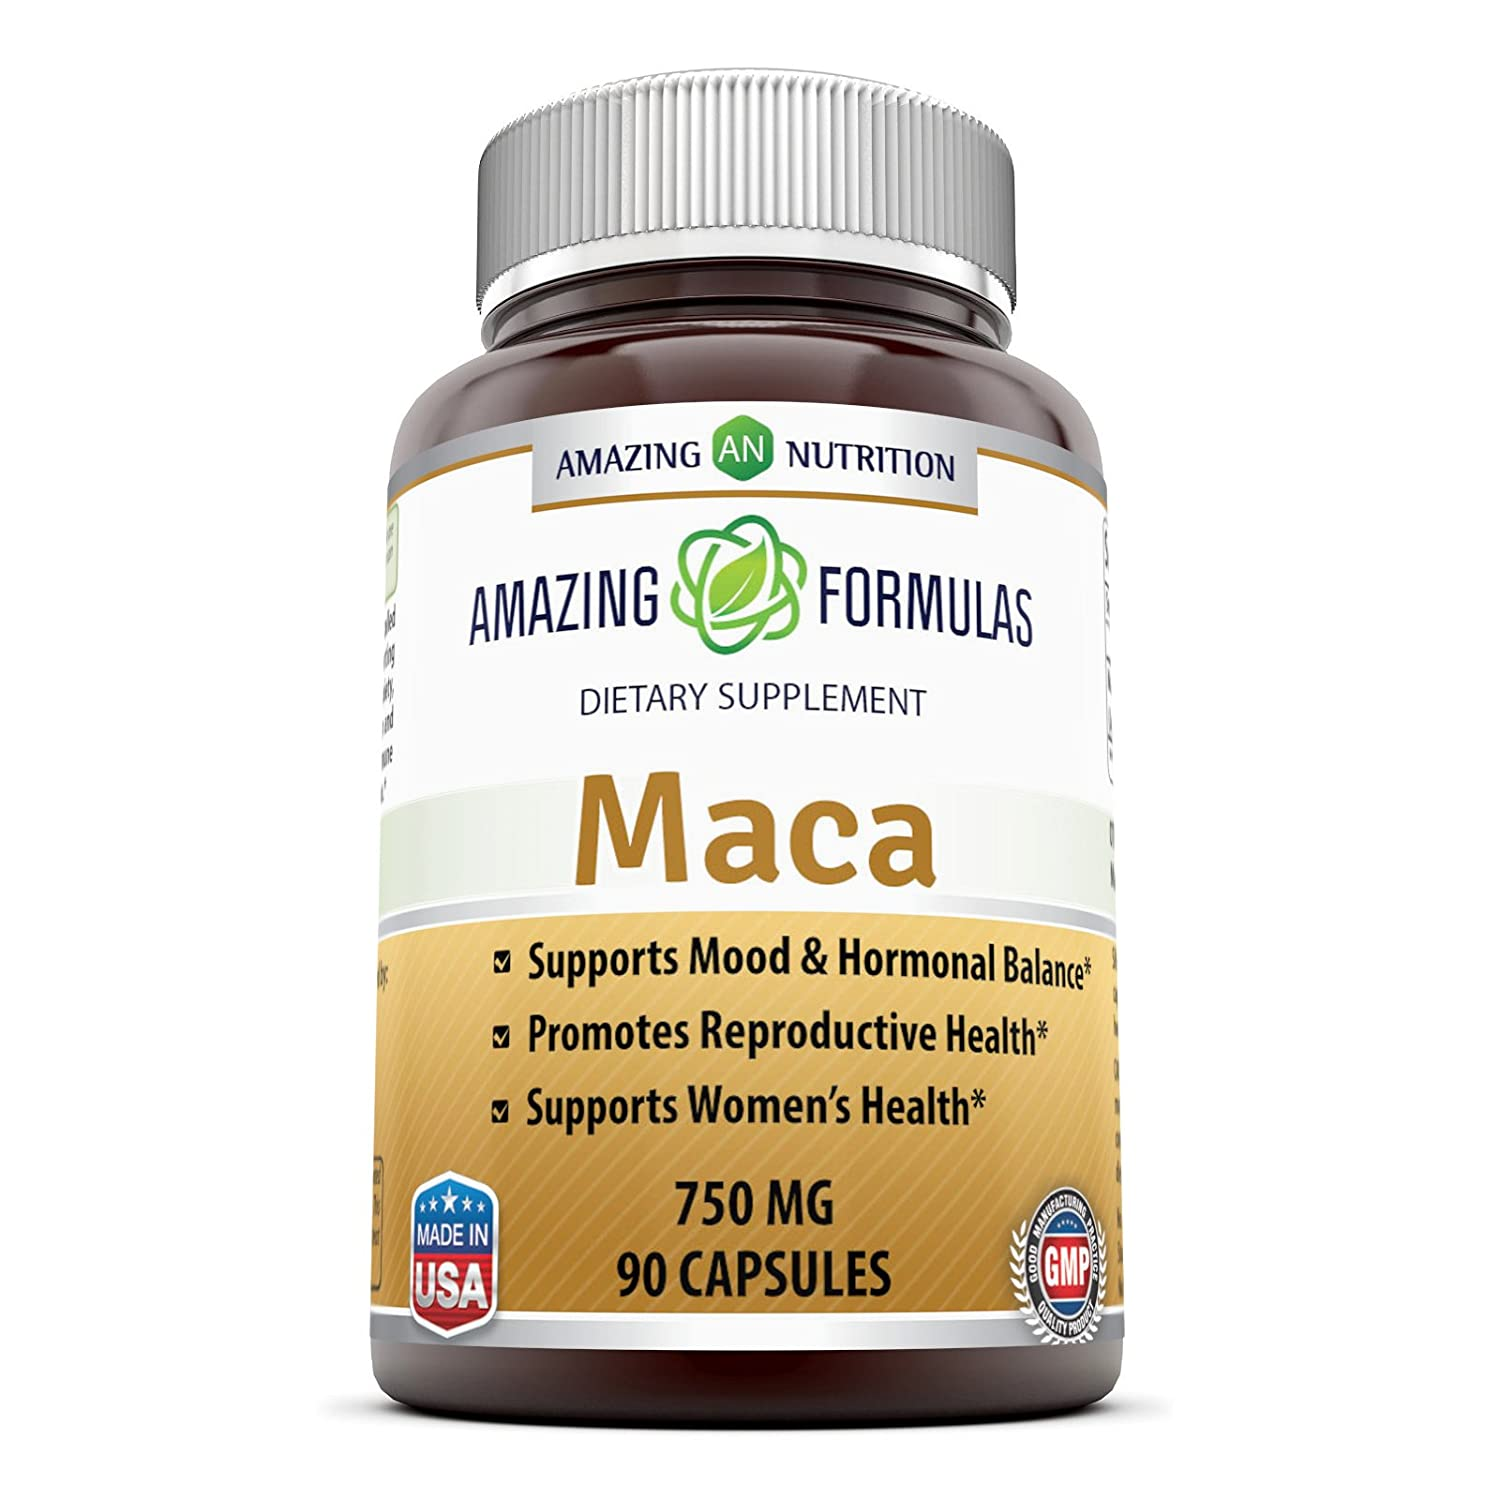 Amazing Formulas Maca Root Supplement * High Concentrate, Pure Maca (Lepidium Meyenii) Root 6: 1 Extract * 750mg 90 Capsules - Supports Reproductive Health, B0196S7842